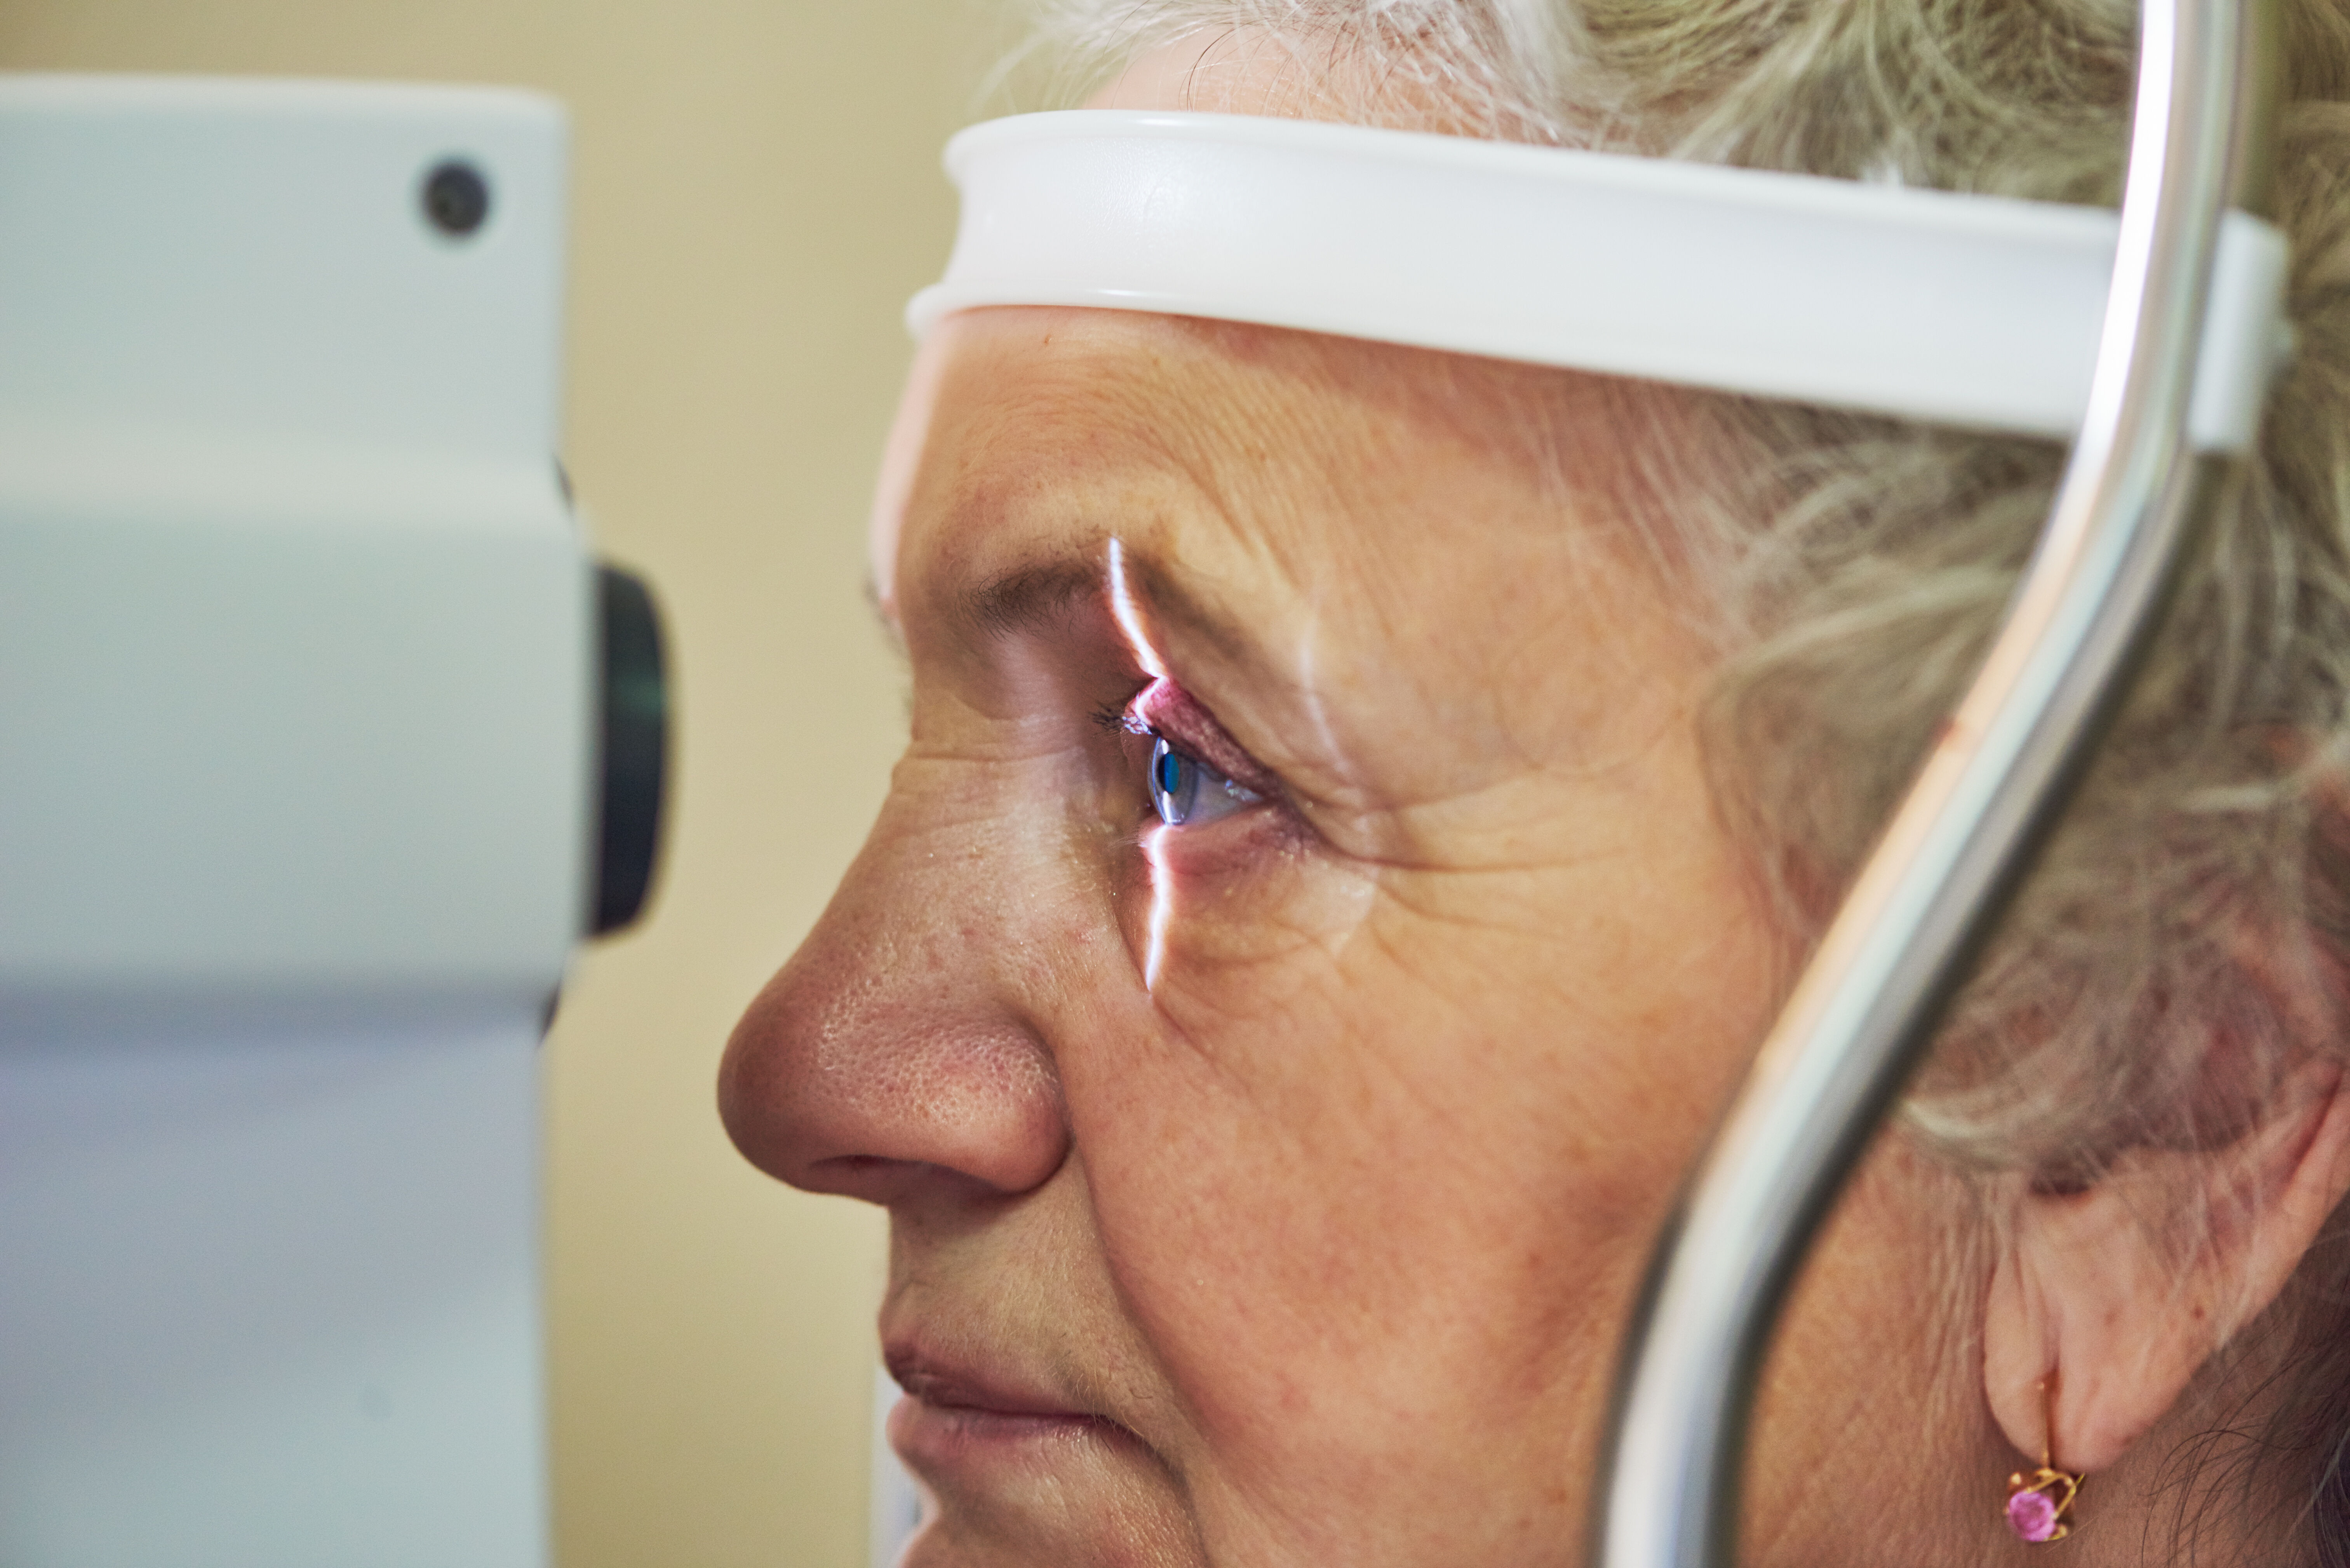 Glaucoma is vision disease